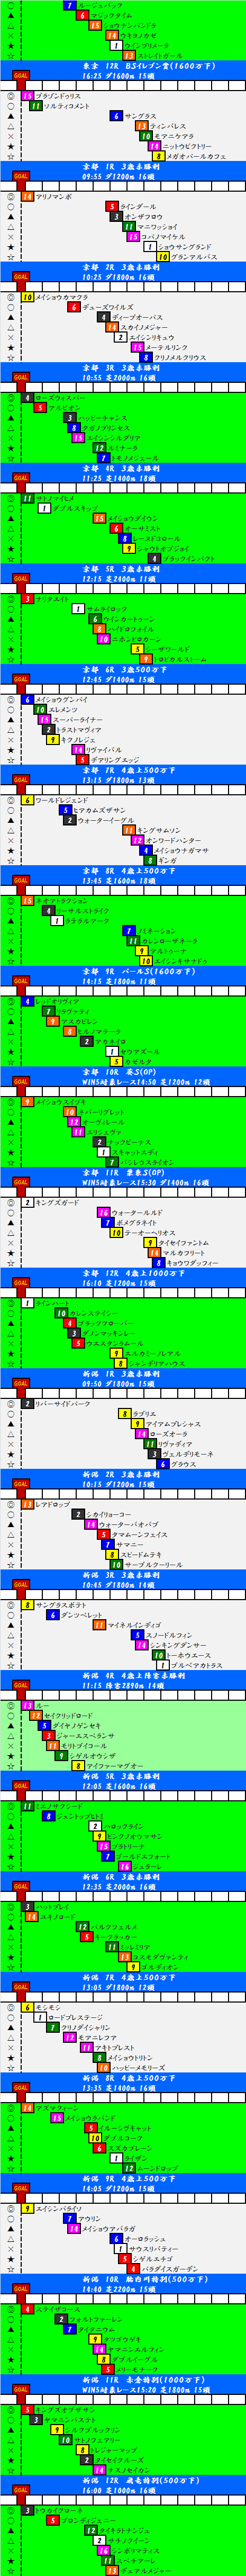 2016051502.png